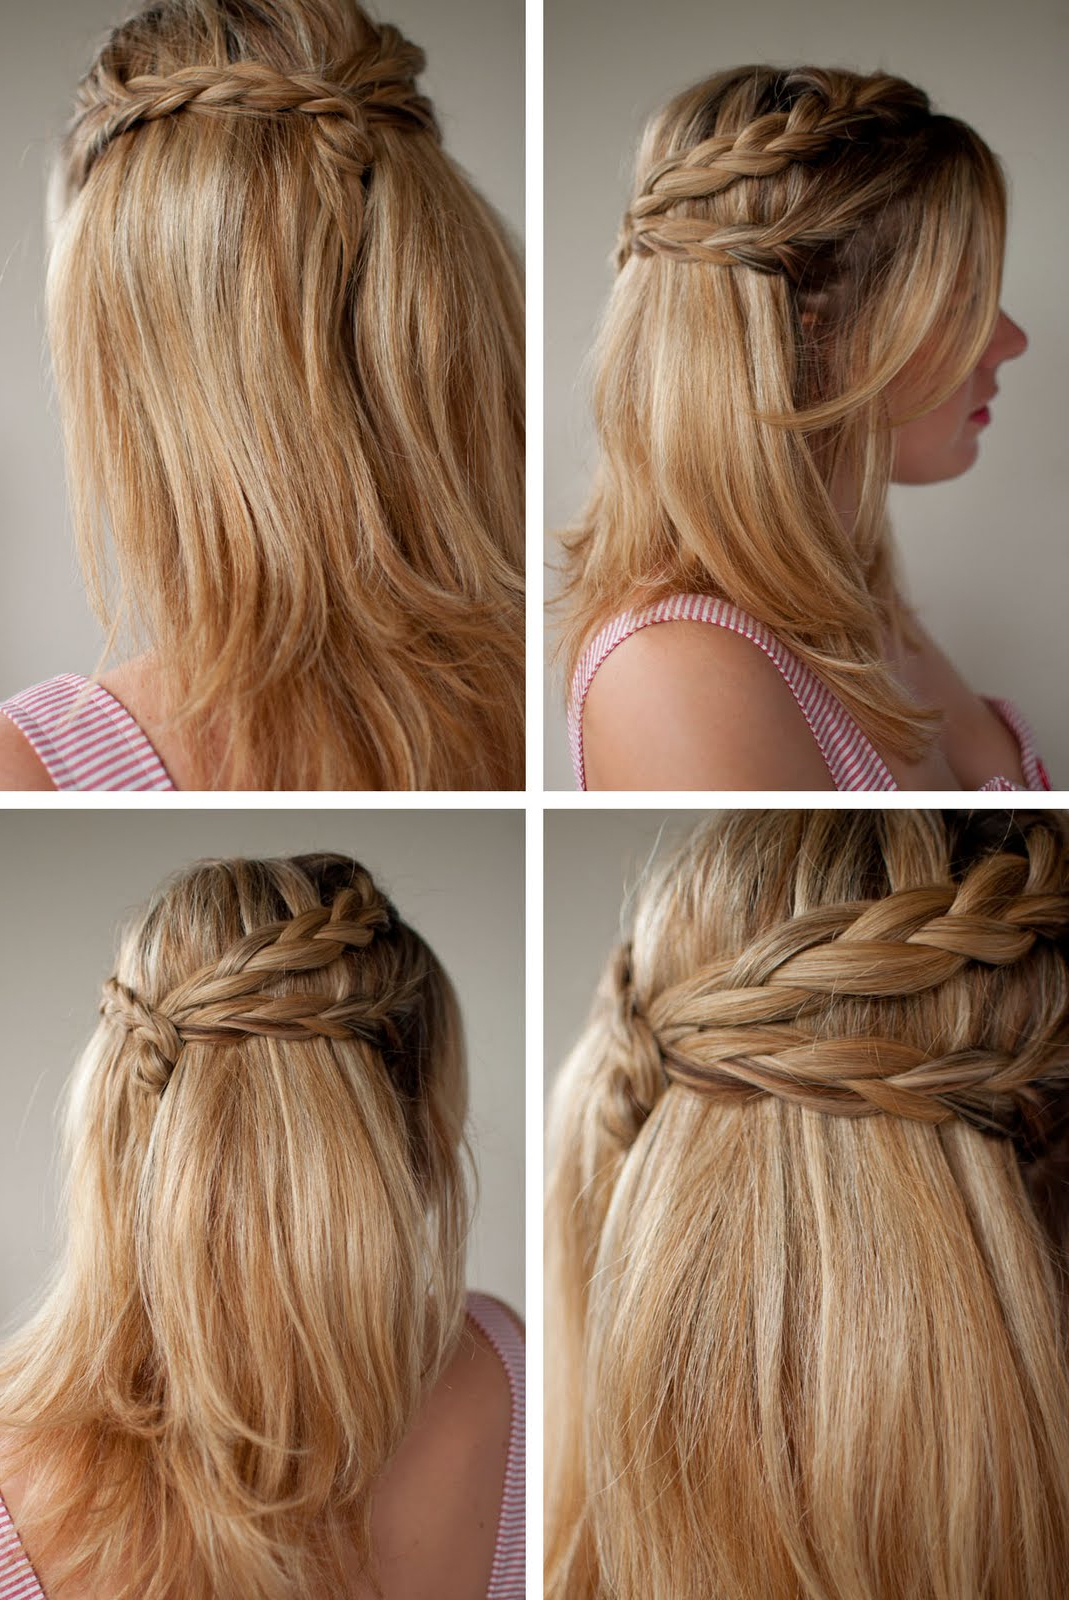 30 Days Of Twist & Pin Hairstyles – Day 20 – Hair Romance In Most Current Twisted And Pinned Half Up Wedding Hairstyles (View 3 of 20)